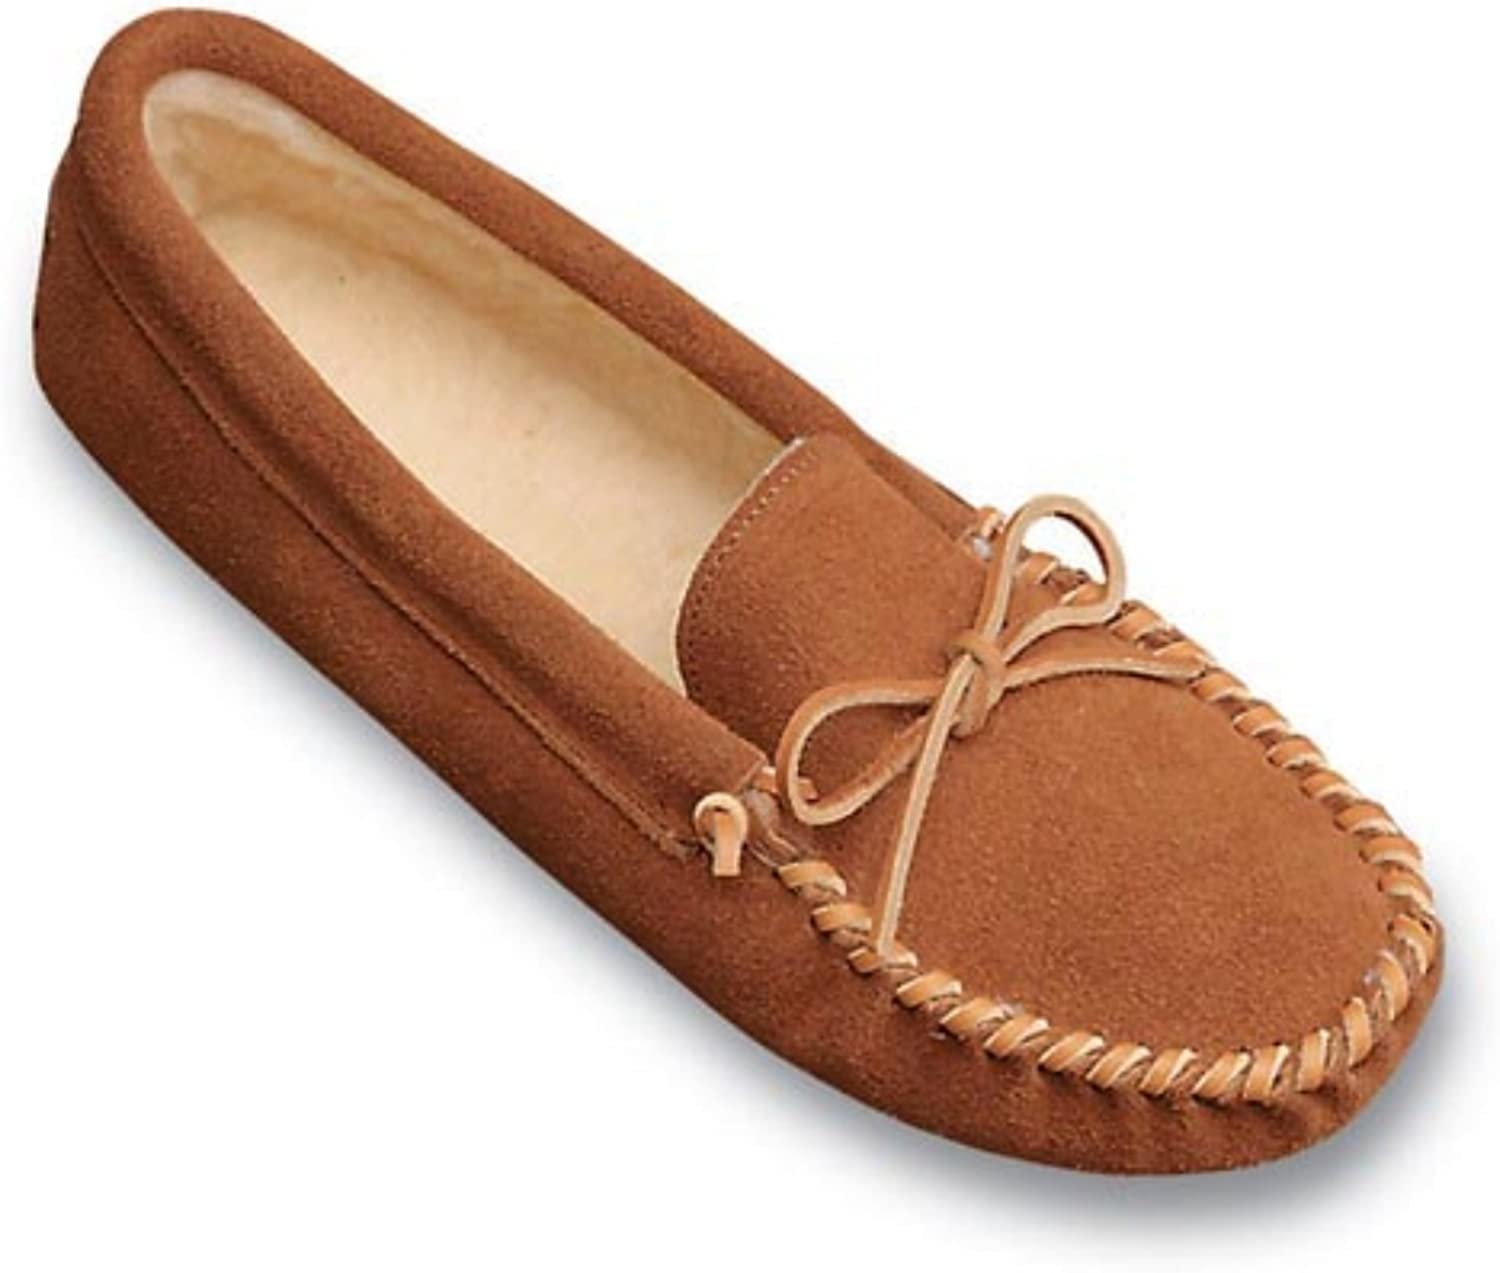 Minnetonka Women's Traditional Pile Slippers Softsole Free Shipping New Medi Max 53% OFF Lined